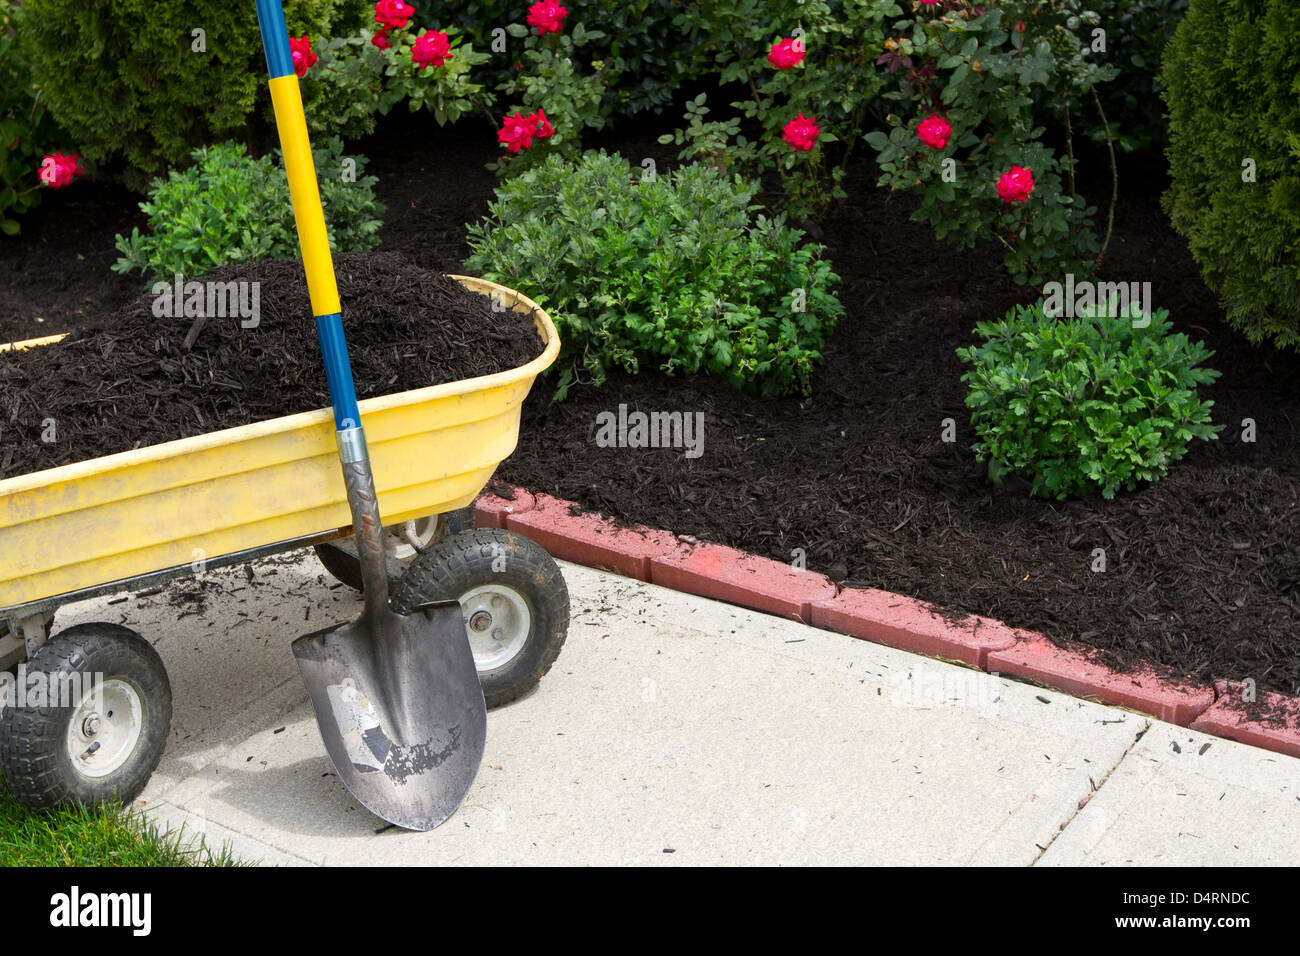 Its about that time to mulch around the neighborhood. Stock Photo